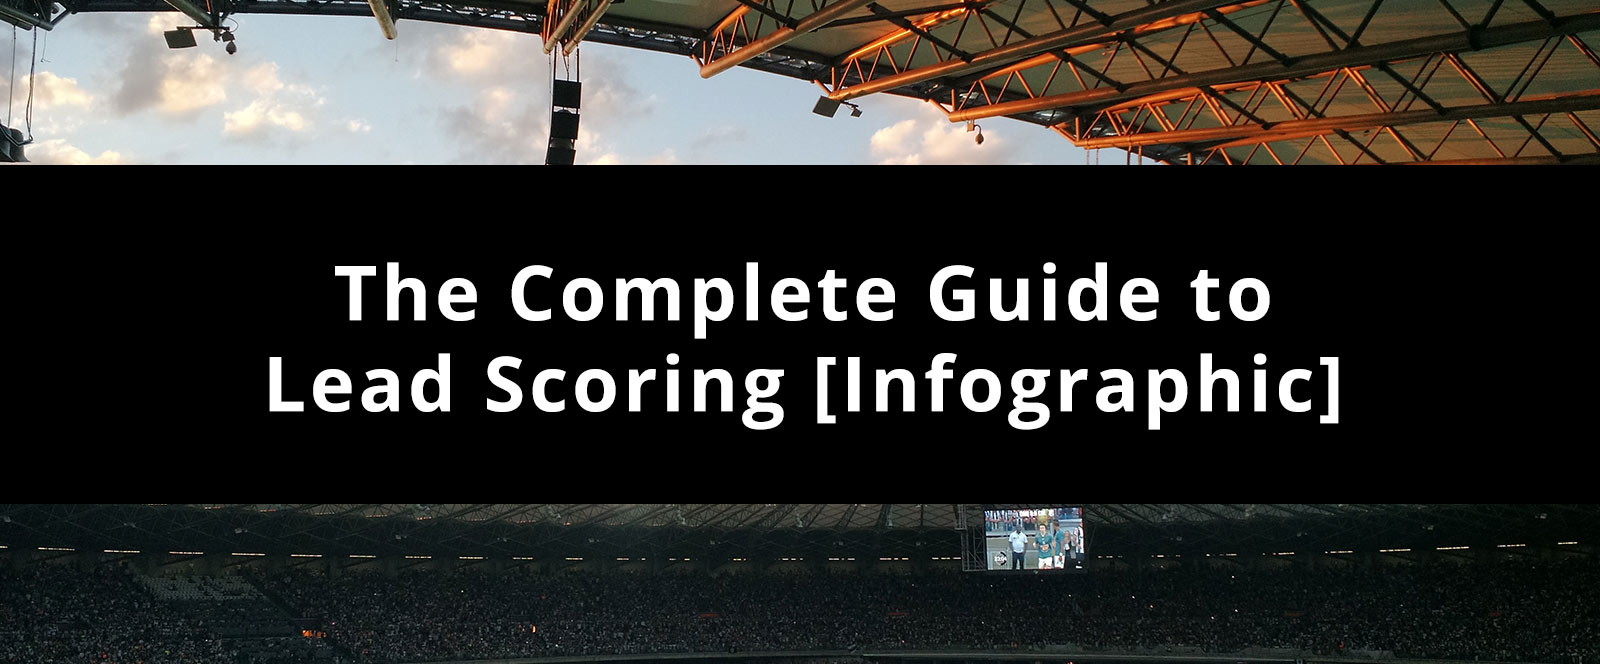 What is Lead Scoring? 3 Examples to Help You Get Started